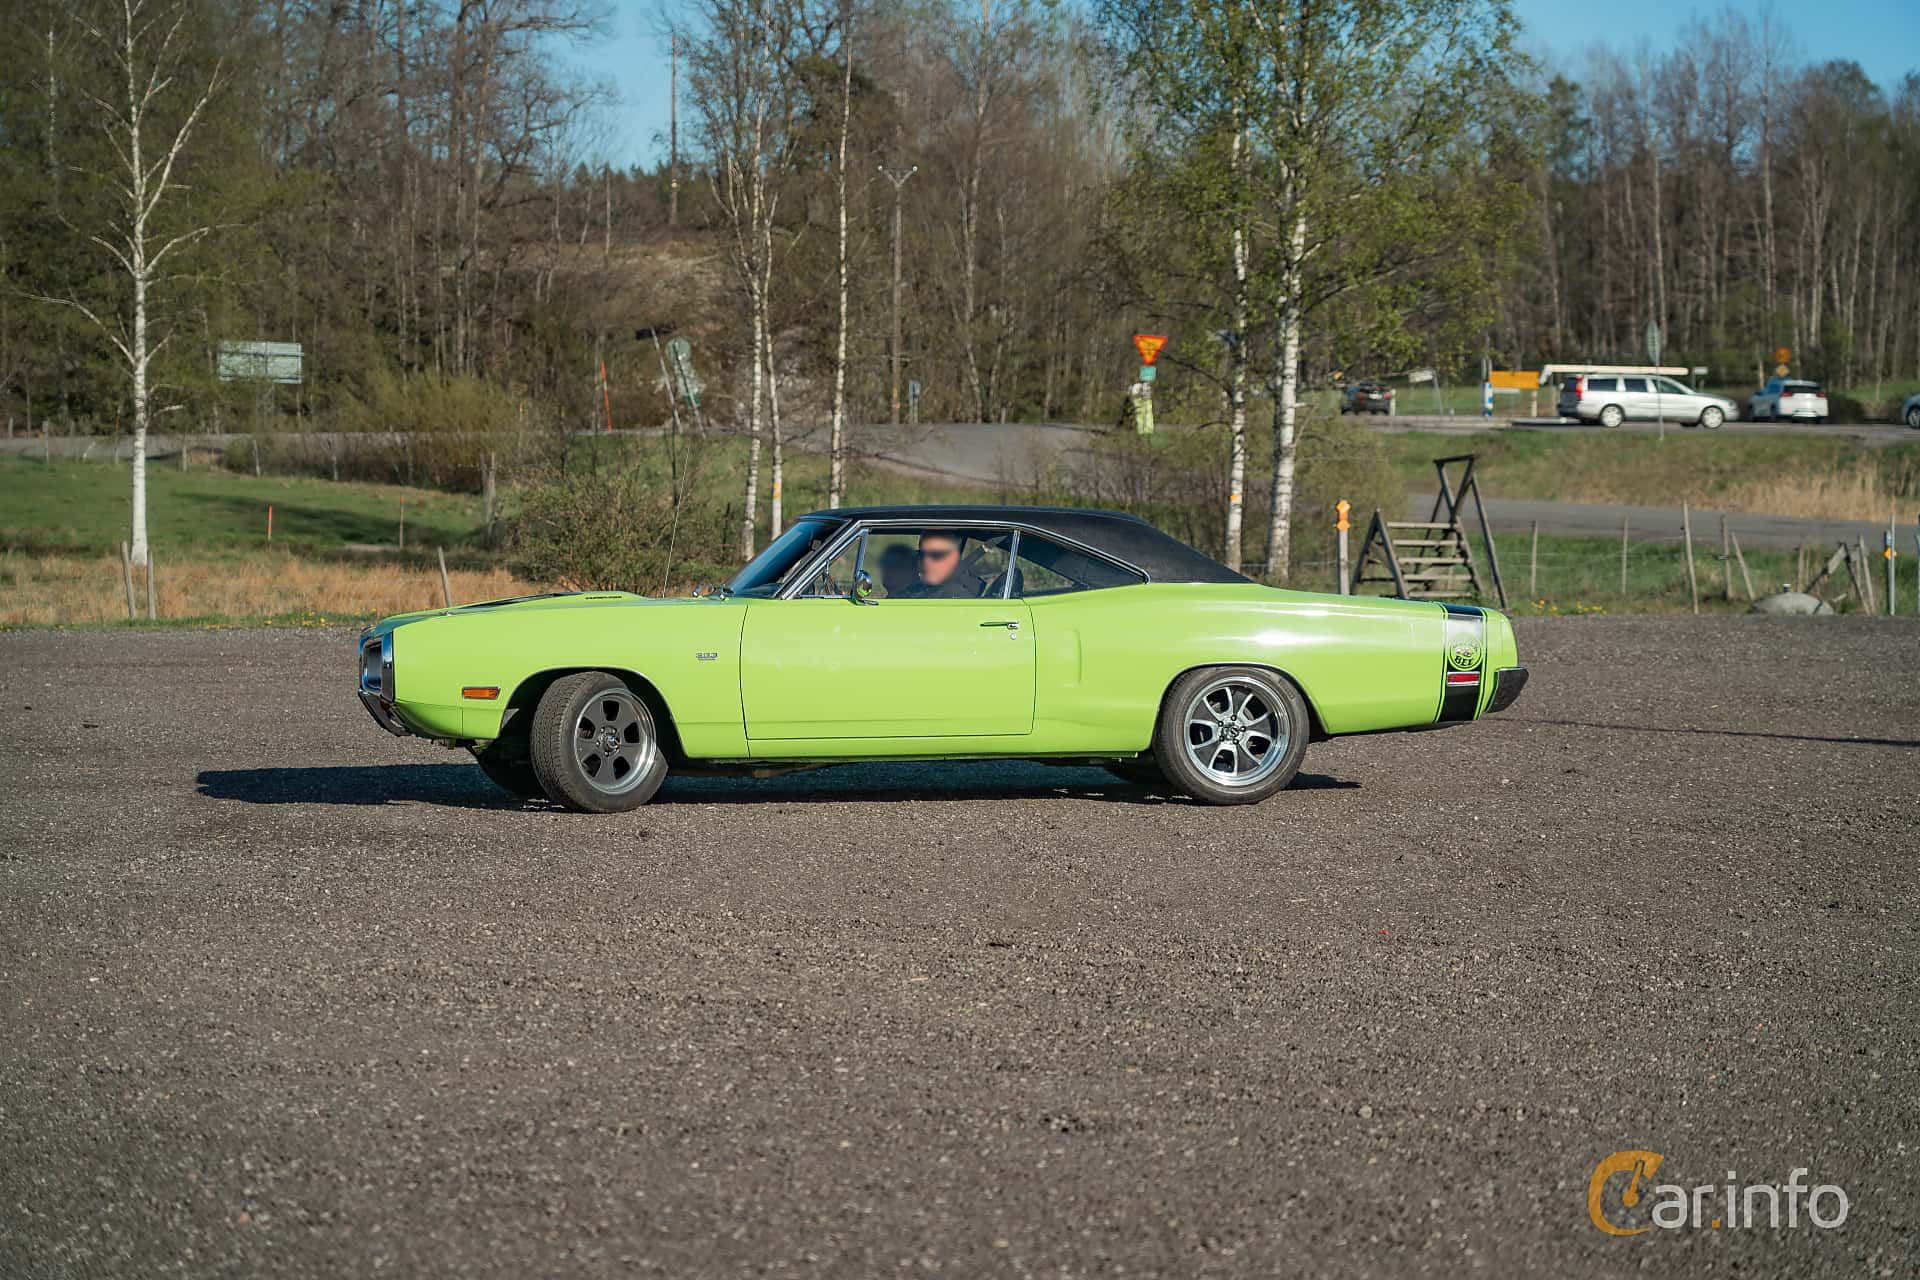 Side  of Dodge Coronet Super Bee Hardtop 6.3 V8 TorqueFlite, 340ps, 1970 at Lissma Classic Car 2019 vecka 20